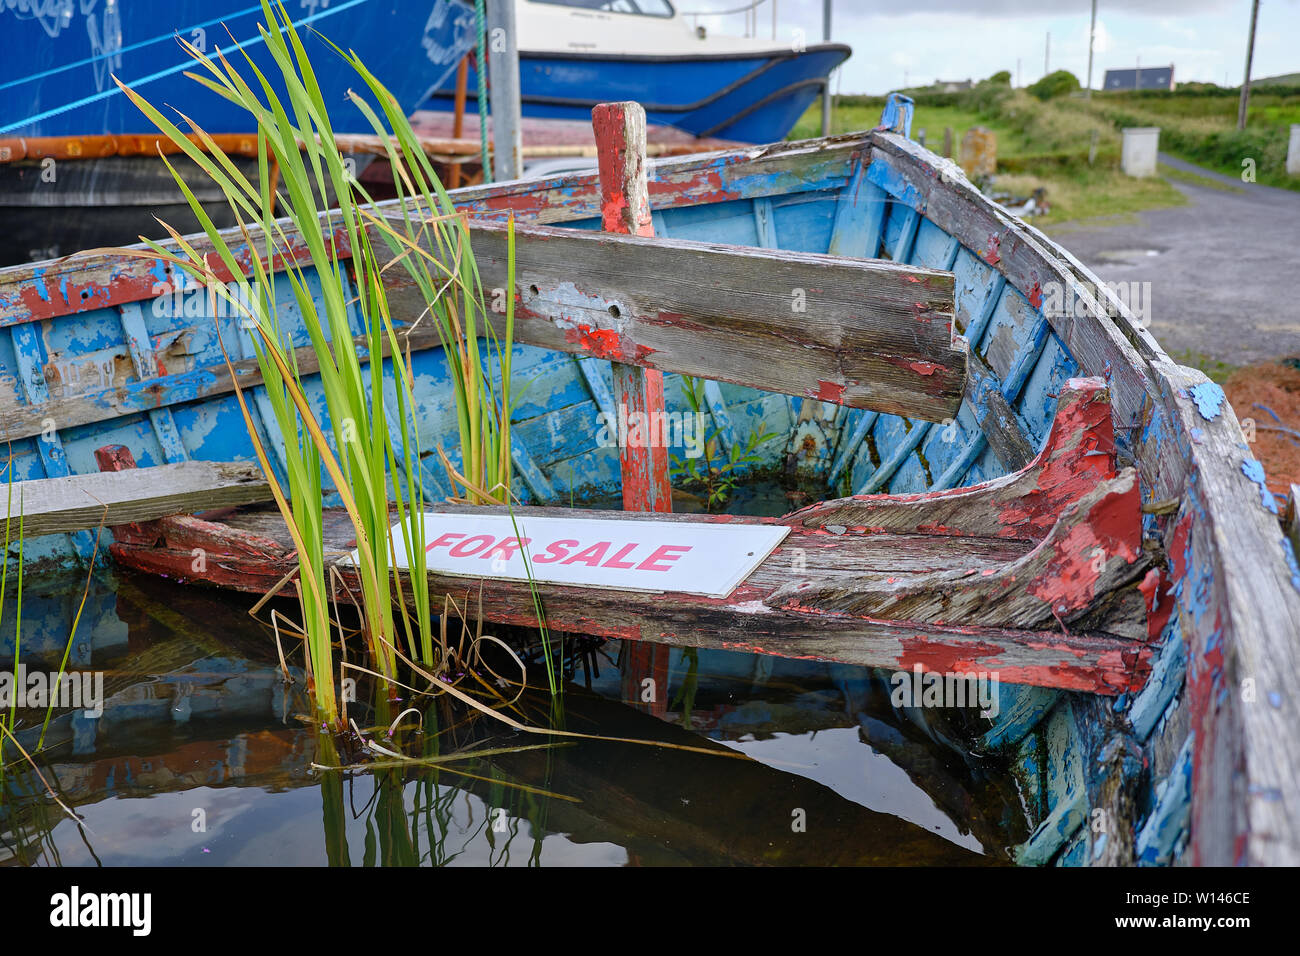 close-up-of-inside-bow-of-old-abandoned-wrecked-row-boat-filled-with-rain-water-with-weeds-growing-in-with-a-for-sale-sign-on-rotten-bench-W146CE.jpg